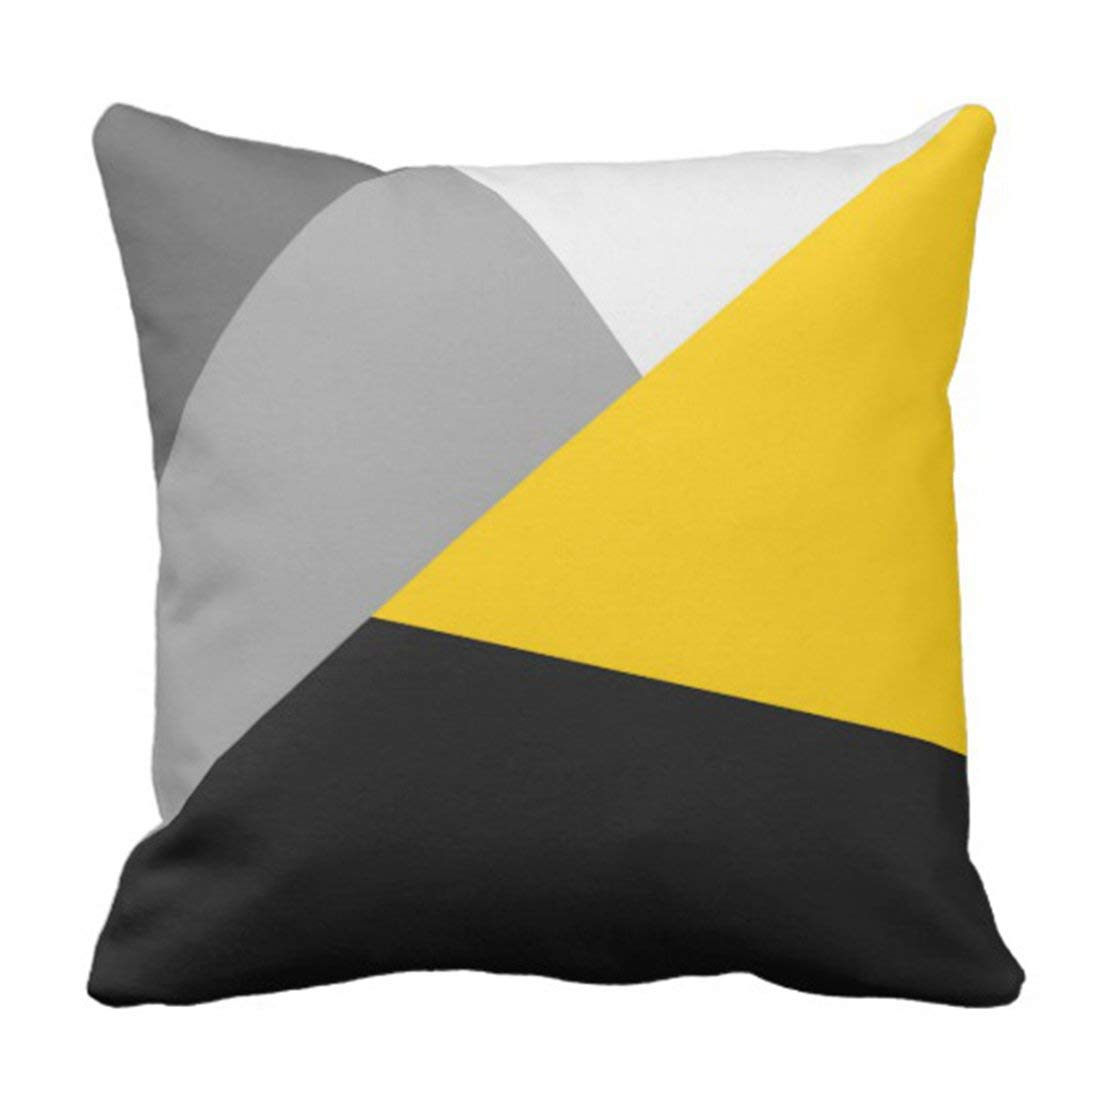 Gray and Yellow PIllow Case Standard SIze